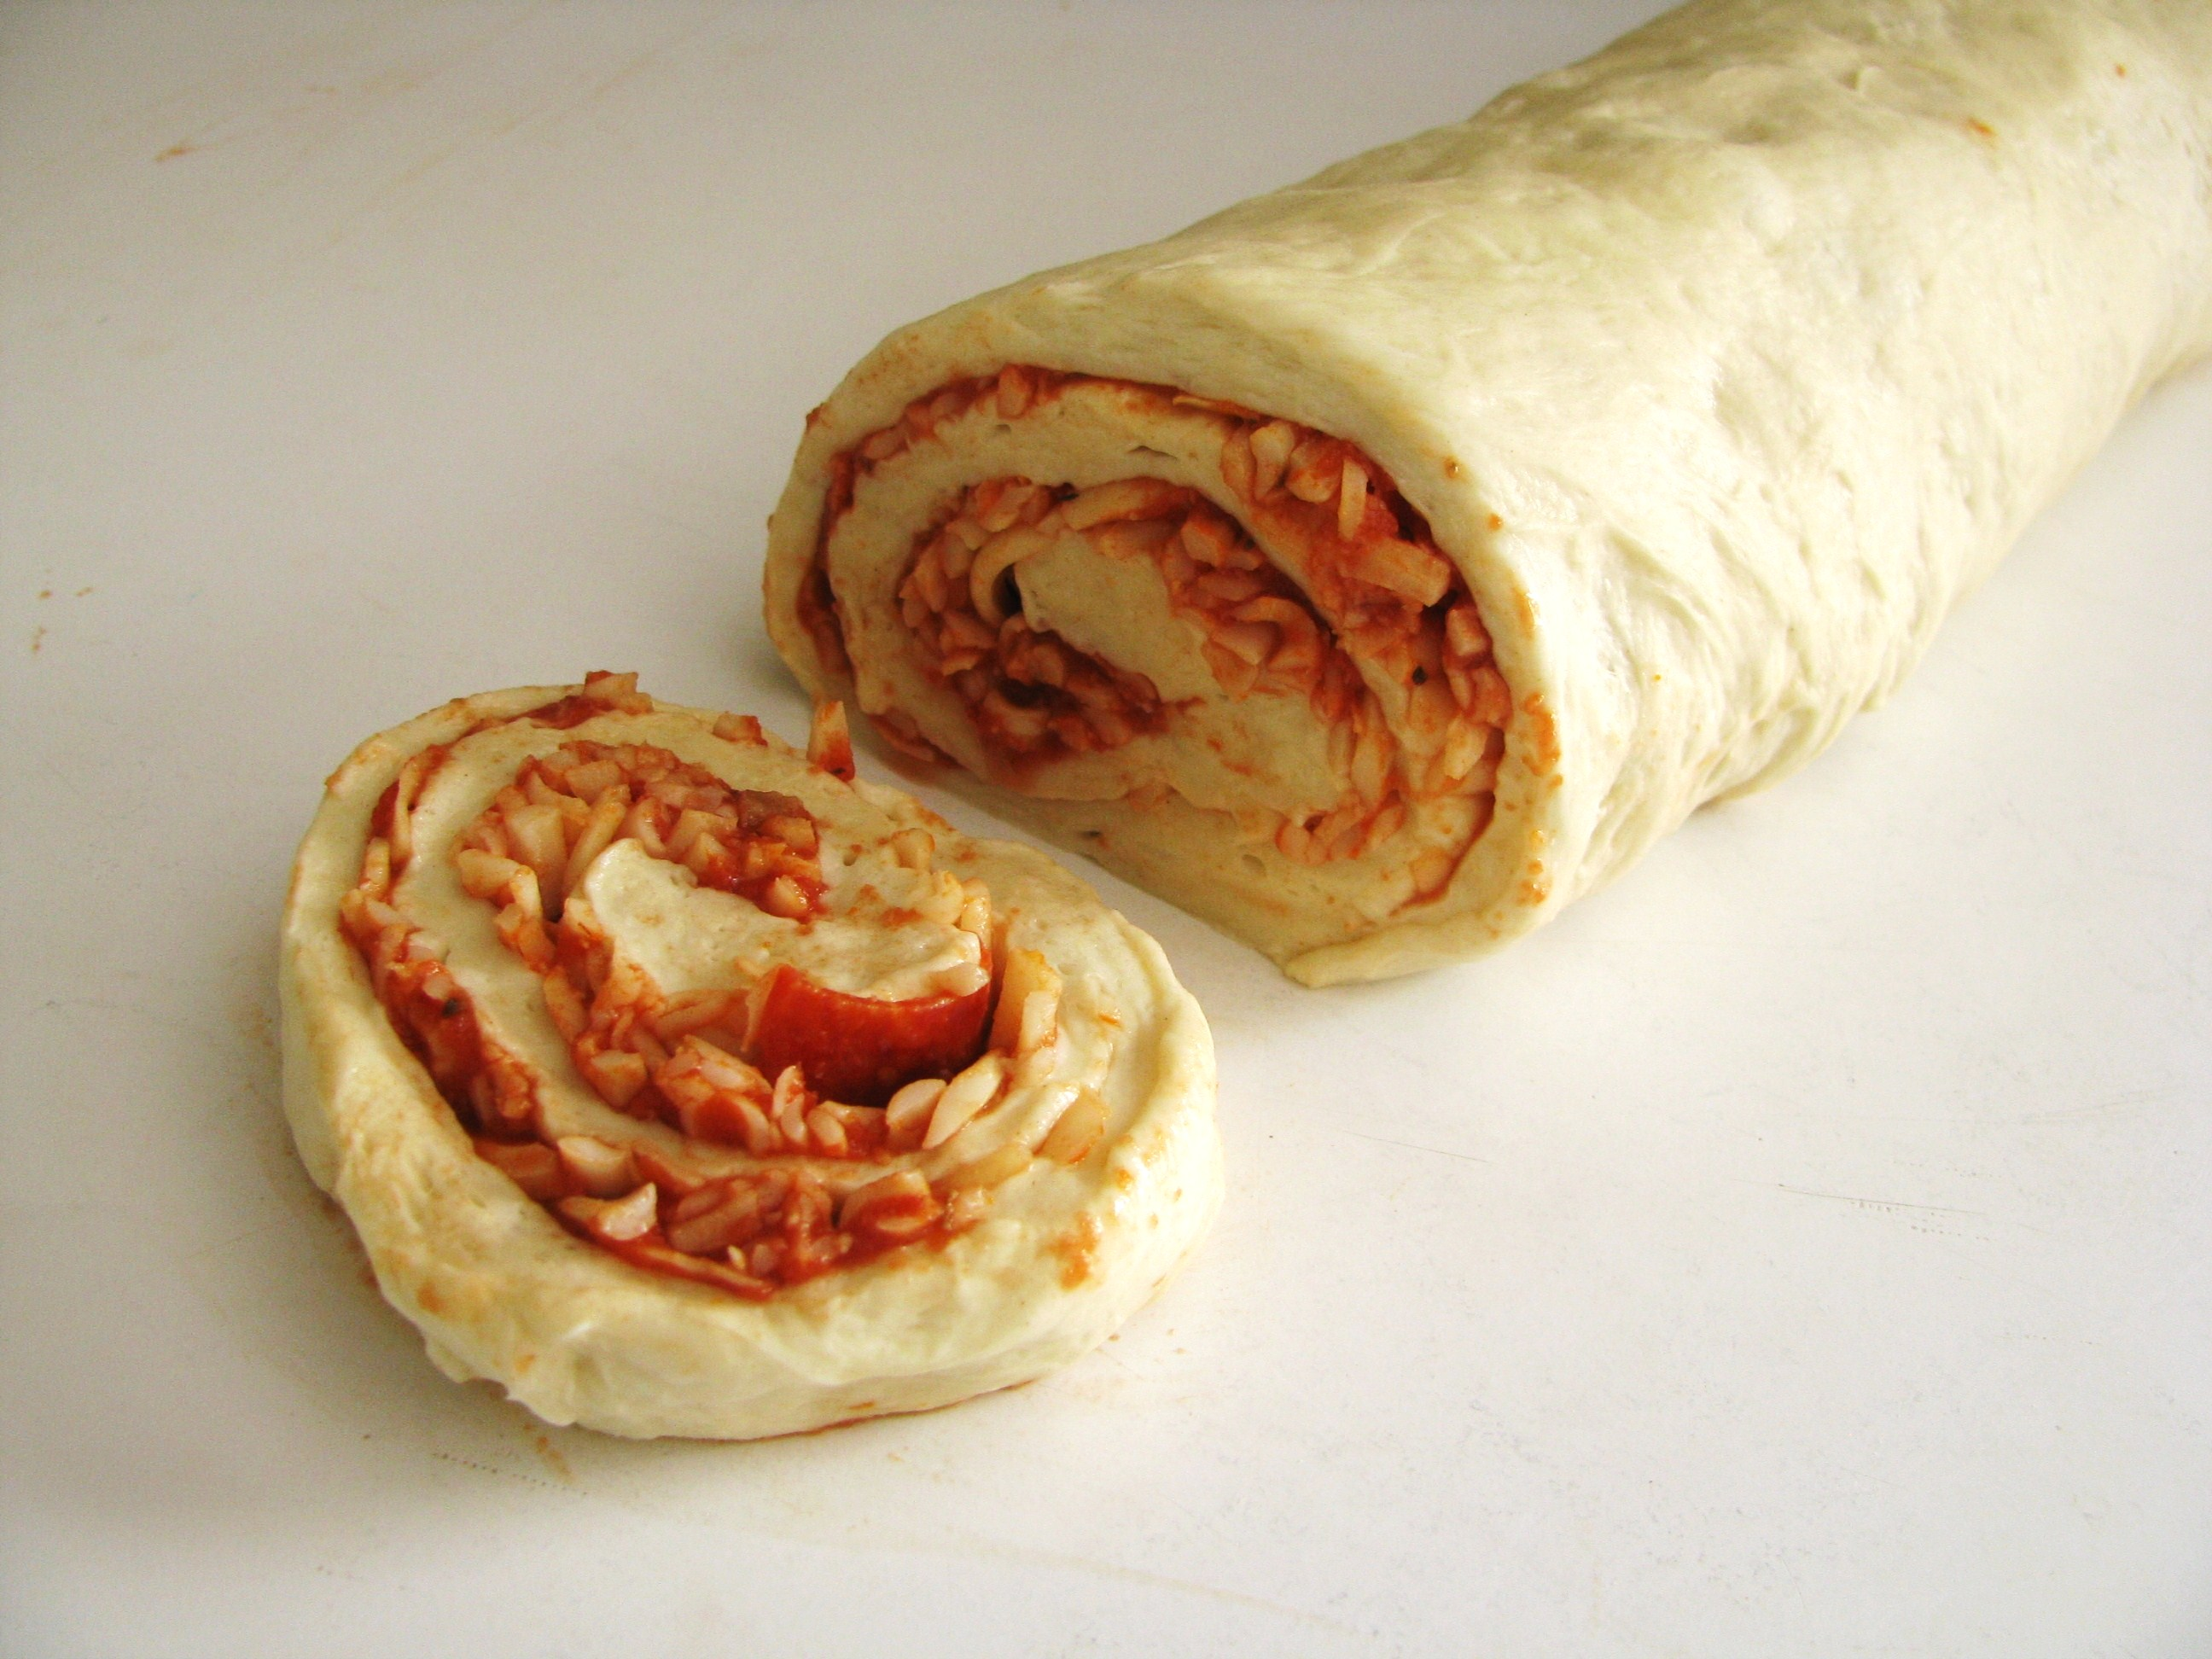 039 - pizza roll